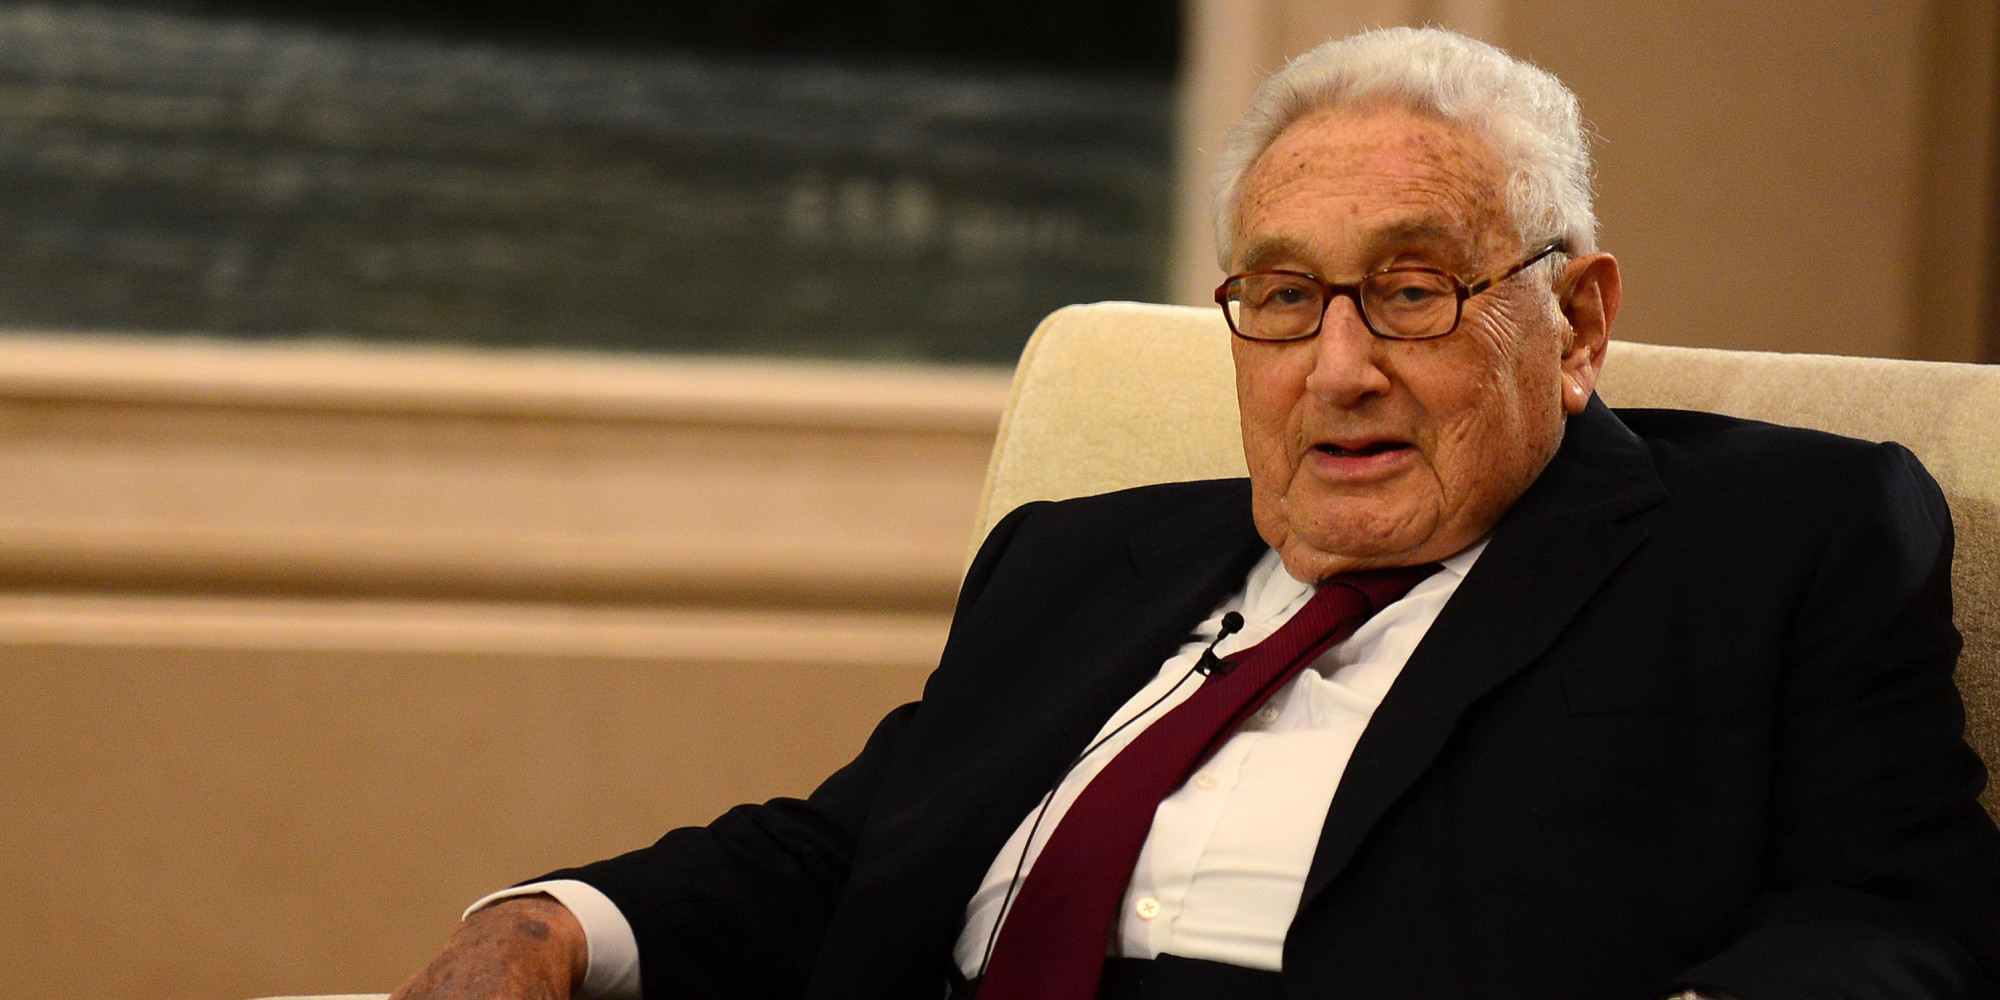 henry kissinger Henry kissinger says the united states needs to strike the islamic state in retaliation for the decapitation of two american journalists, then eliminate it.